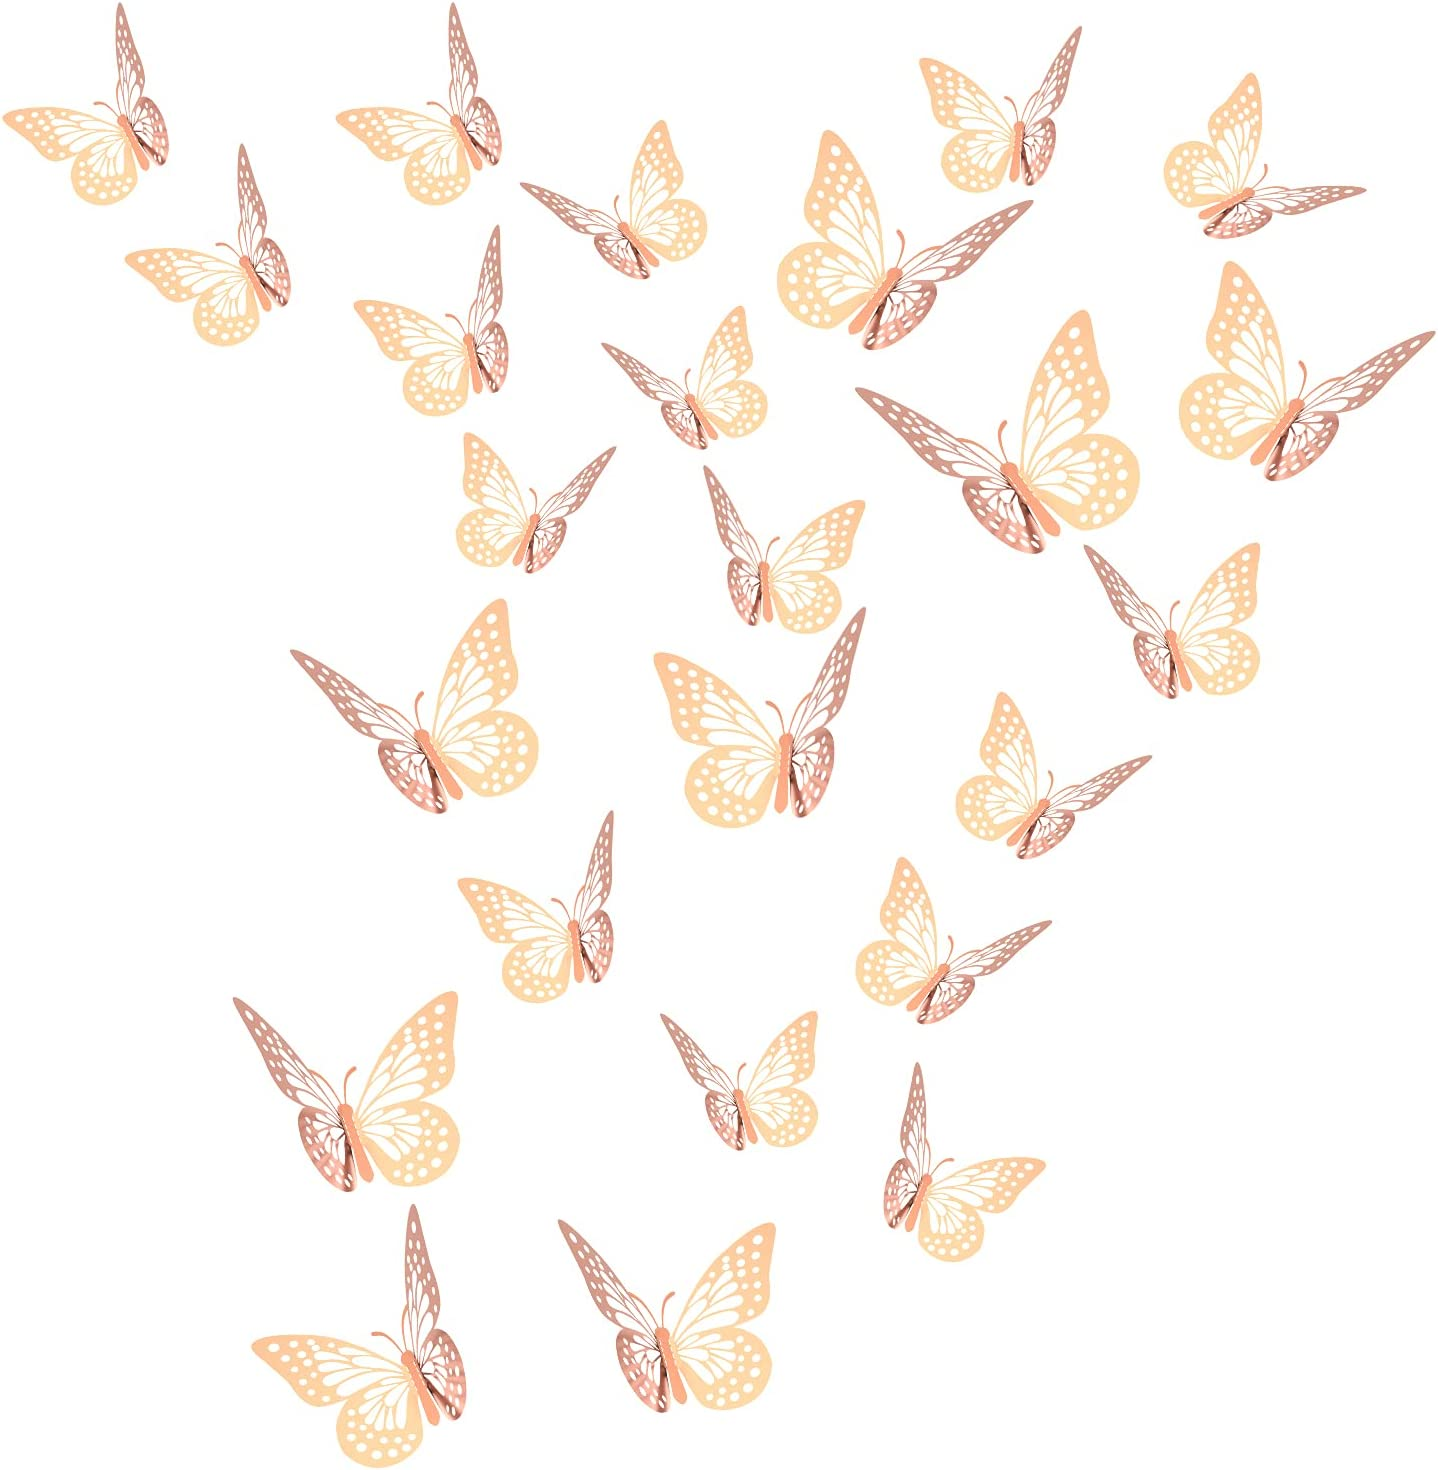 24pcs 3D Butterfly Removable Wall Stickers Mural Decor, 2styles 3 Sizes Rose Gold Butterfly for Baby Girl Bedroom Room Kitchen Classroom Wedding Birthday Party Cake Decoration DIY Gift(Rose Gold)